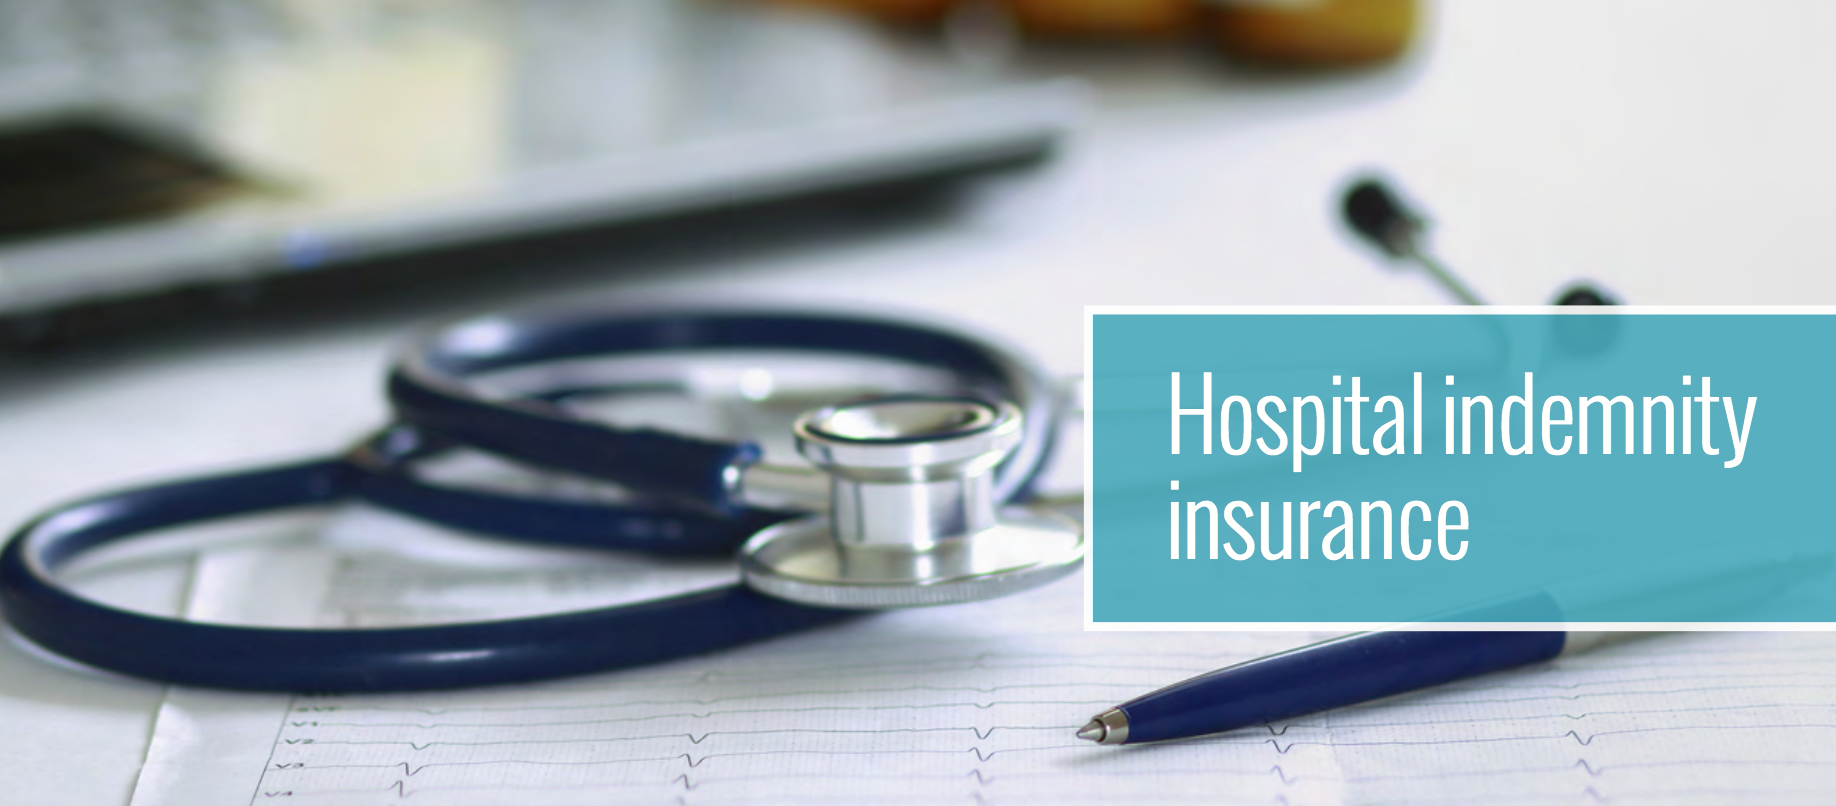 Hospital indemnity insurance, hospital, cost, expense, Colonial Life, The BeneChoice Companies, Stacia Robinson, insurance, education, community, contribution, employer, employee, benefit, benefits, benefit administration, benefit administrator, life, health, accident, long term disability, workers compensation, planning, The BeneChoice Companies, workplace, employees, turnover, benefits, insurance, turnover, Stacia Robinson, Montgomery, AL, Colonial, accidental, voluntary